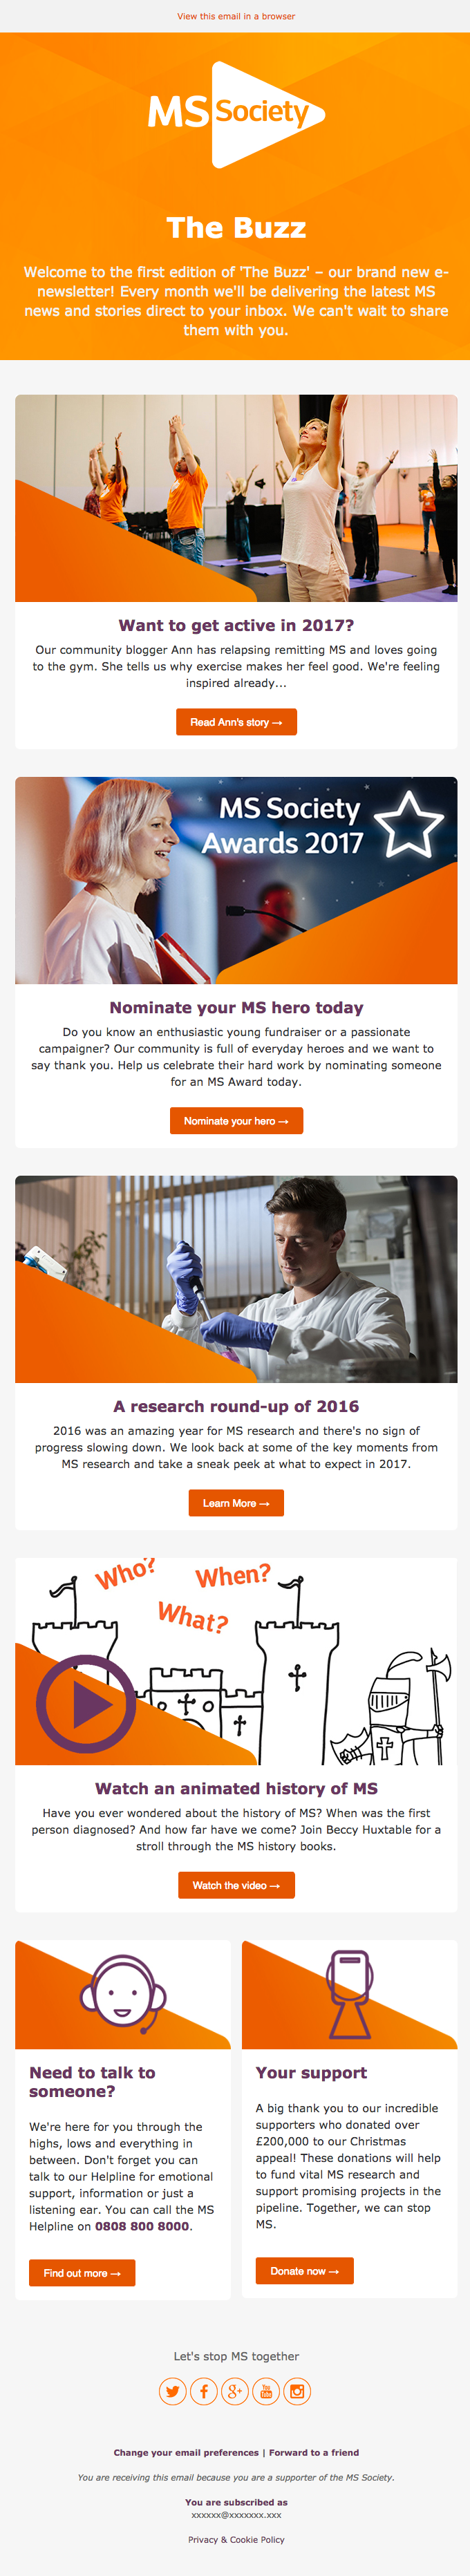 New year, new newsletter – introducing The Buzz from the MS Society